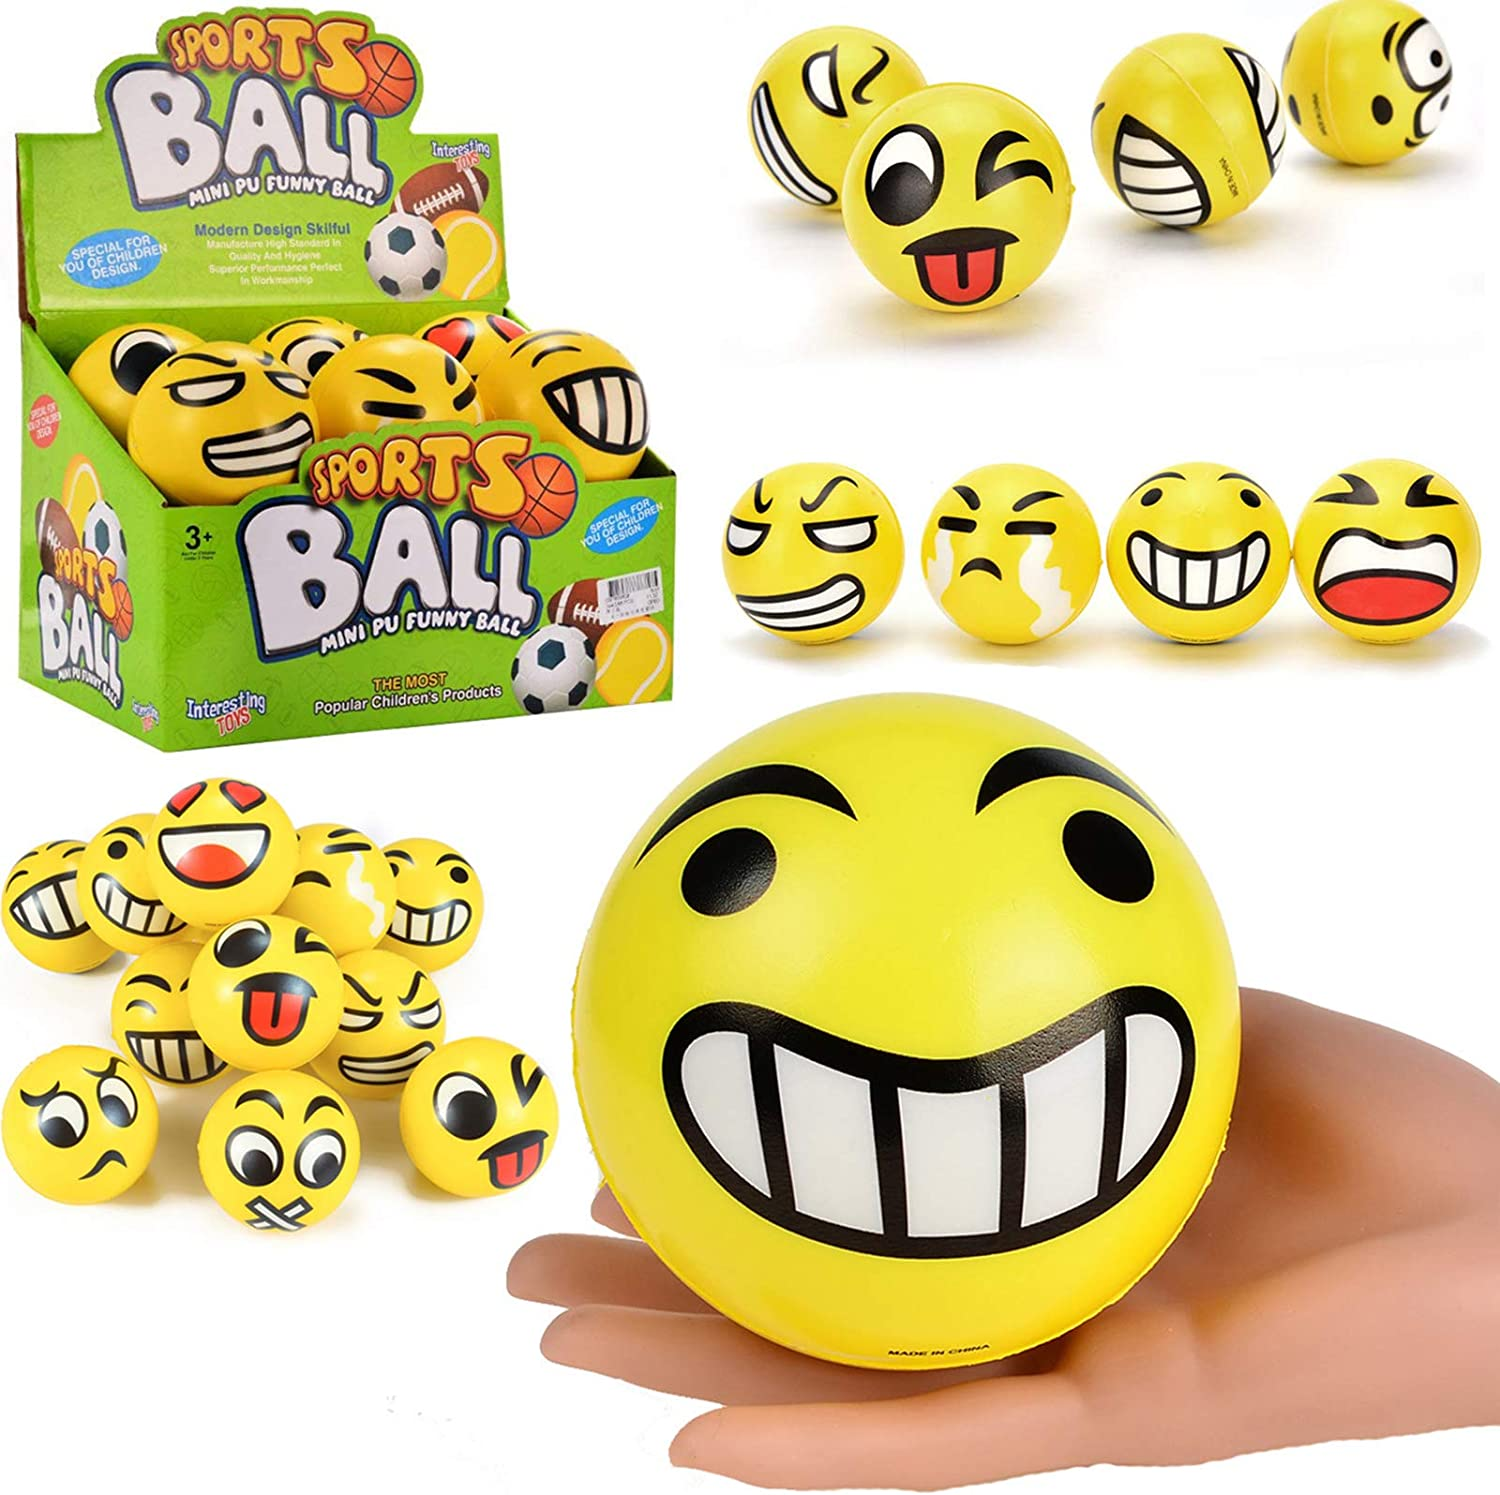 Jumbo Size Emoji Foam Balls Funny Soft Stress 67% OFF of fixed price Yellow Face Limited Special Price Reli